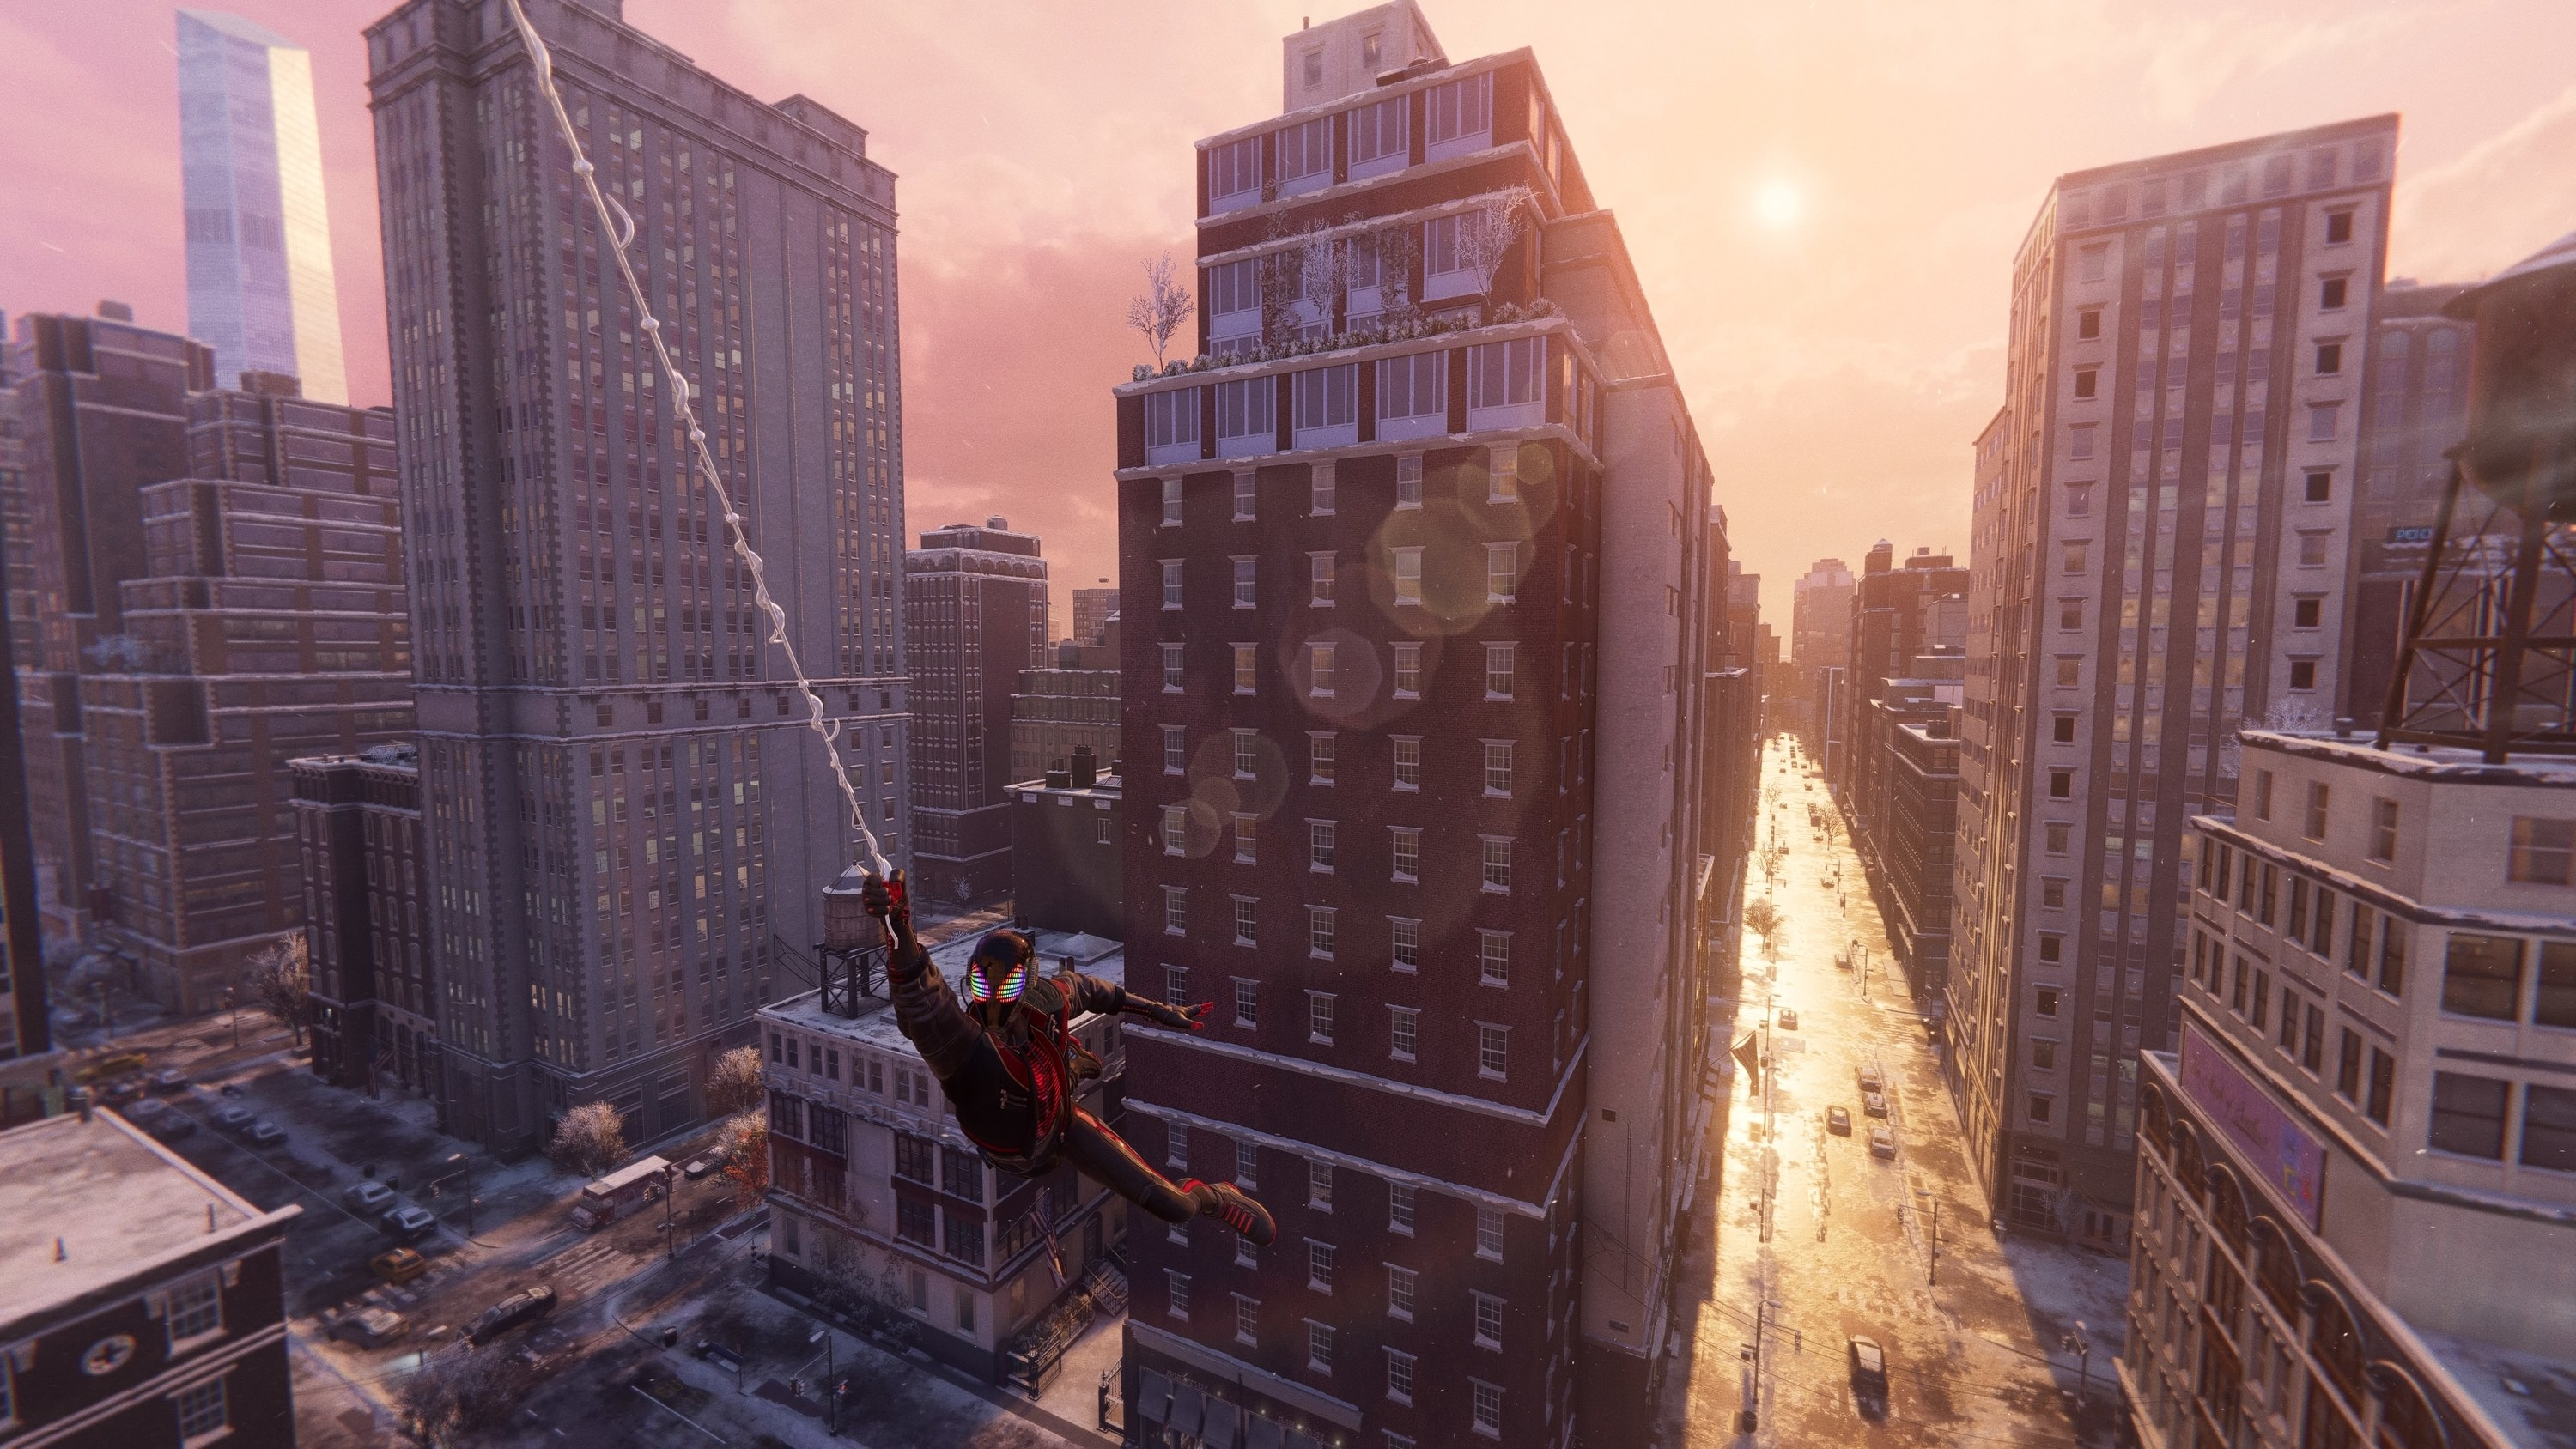 Spider-Man swings on a web through a New York City street as the sun sets behind him